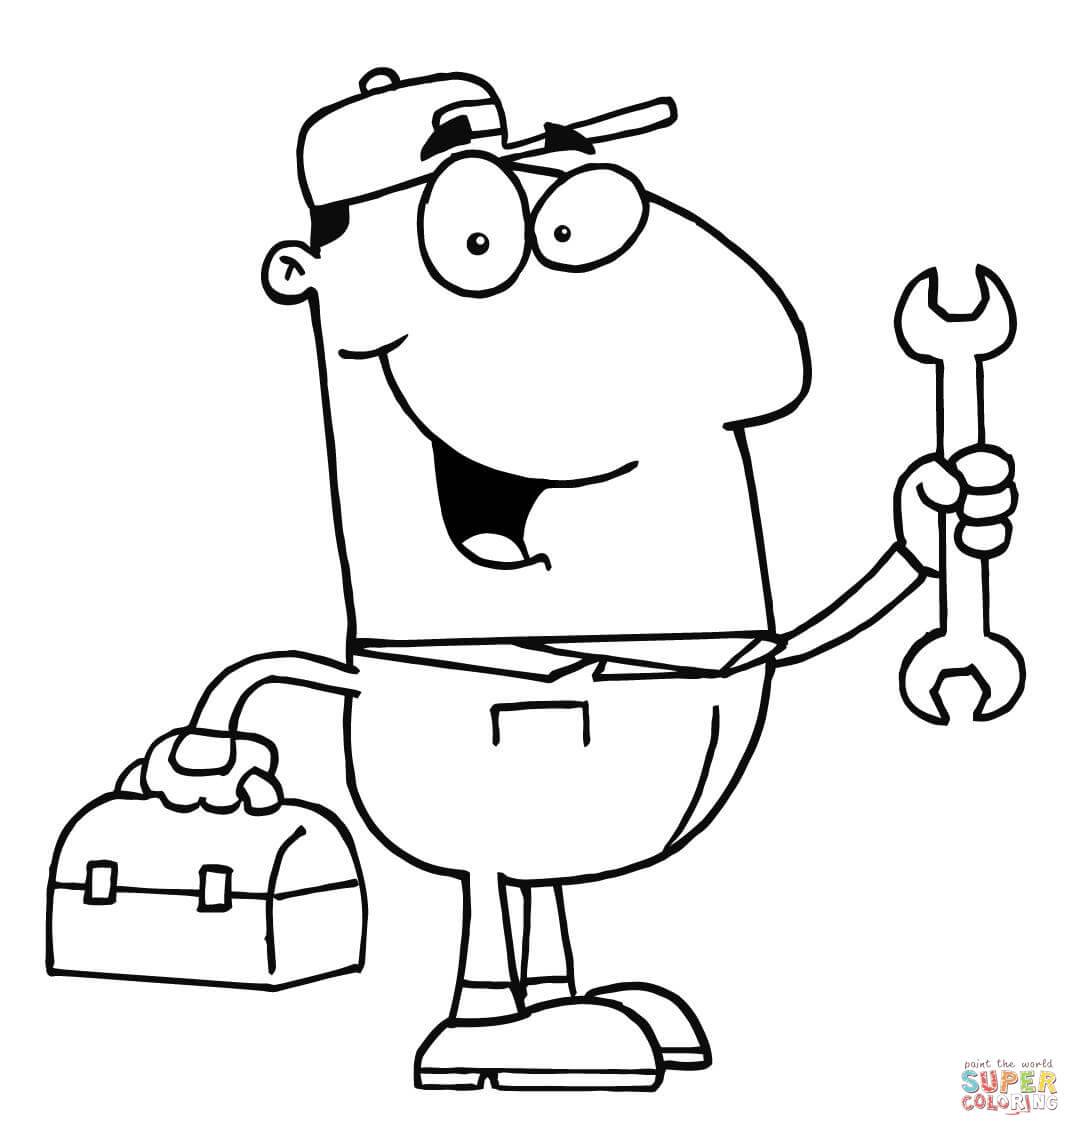 A Repair Man With A Toolbox And A Wrench Coloring Page